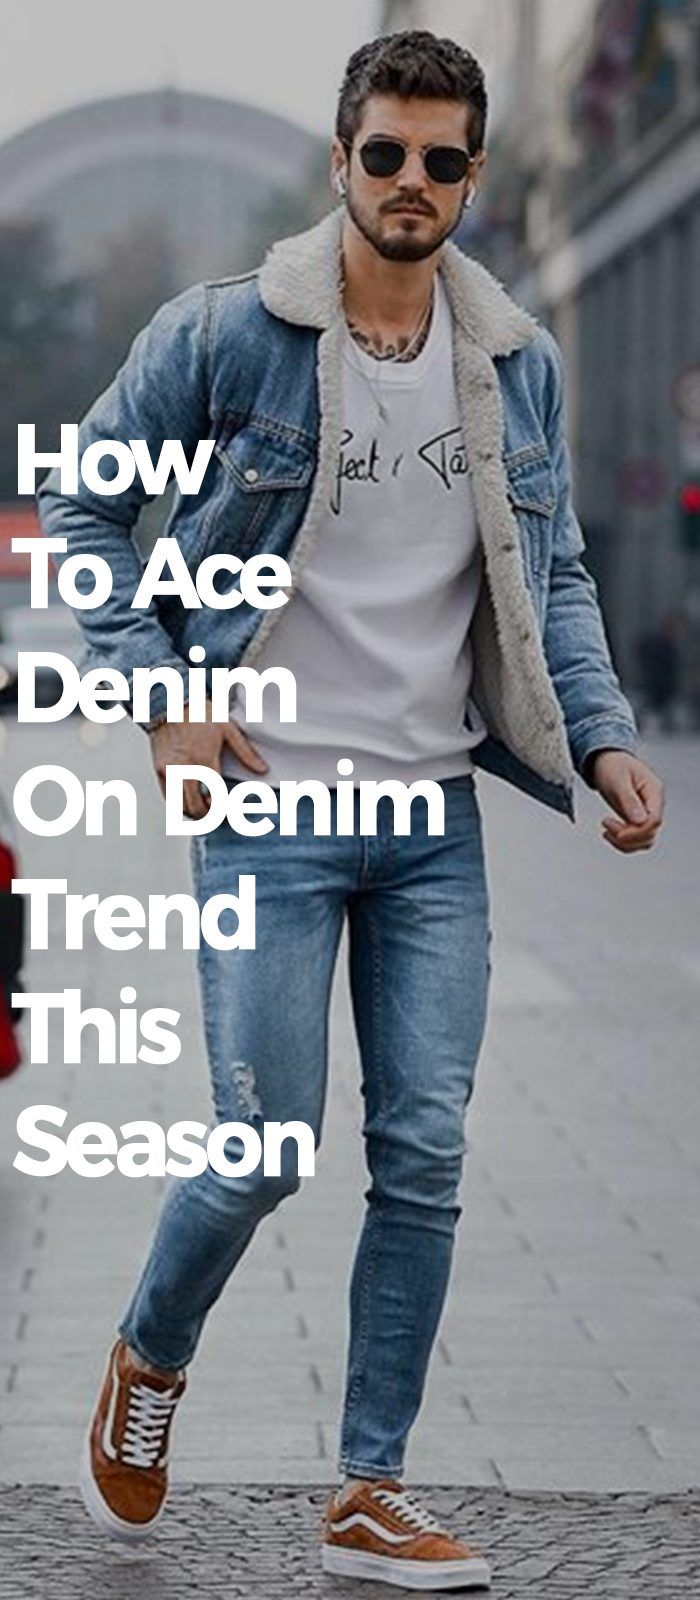 How To Ace Denim On Denim Trend This Season.